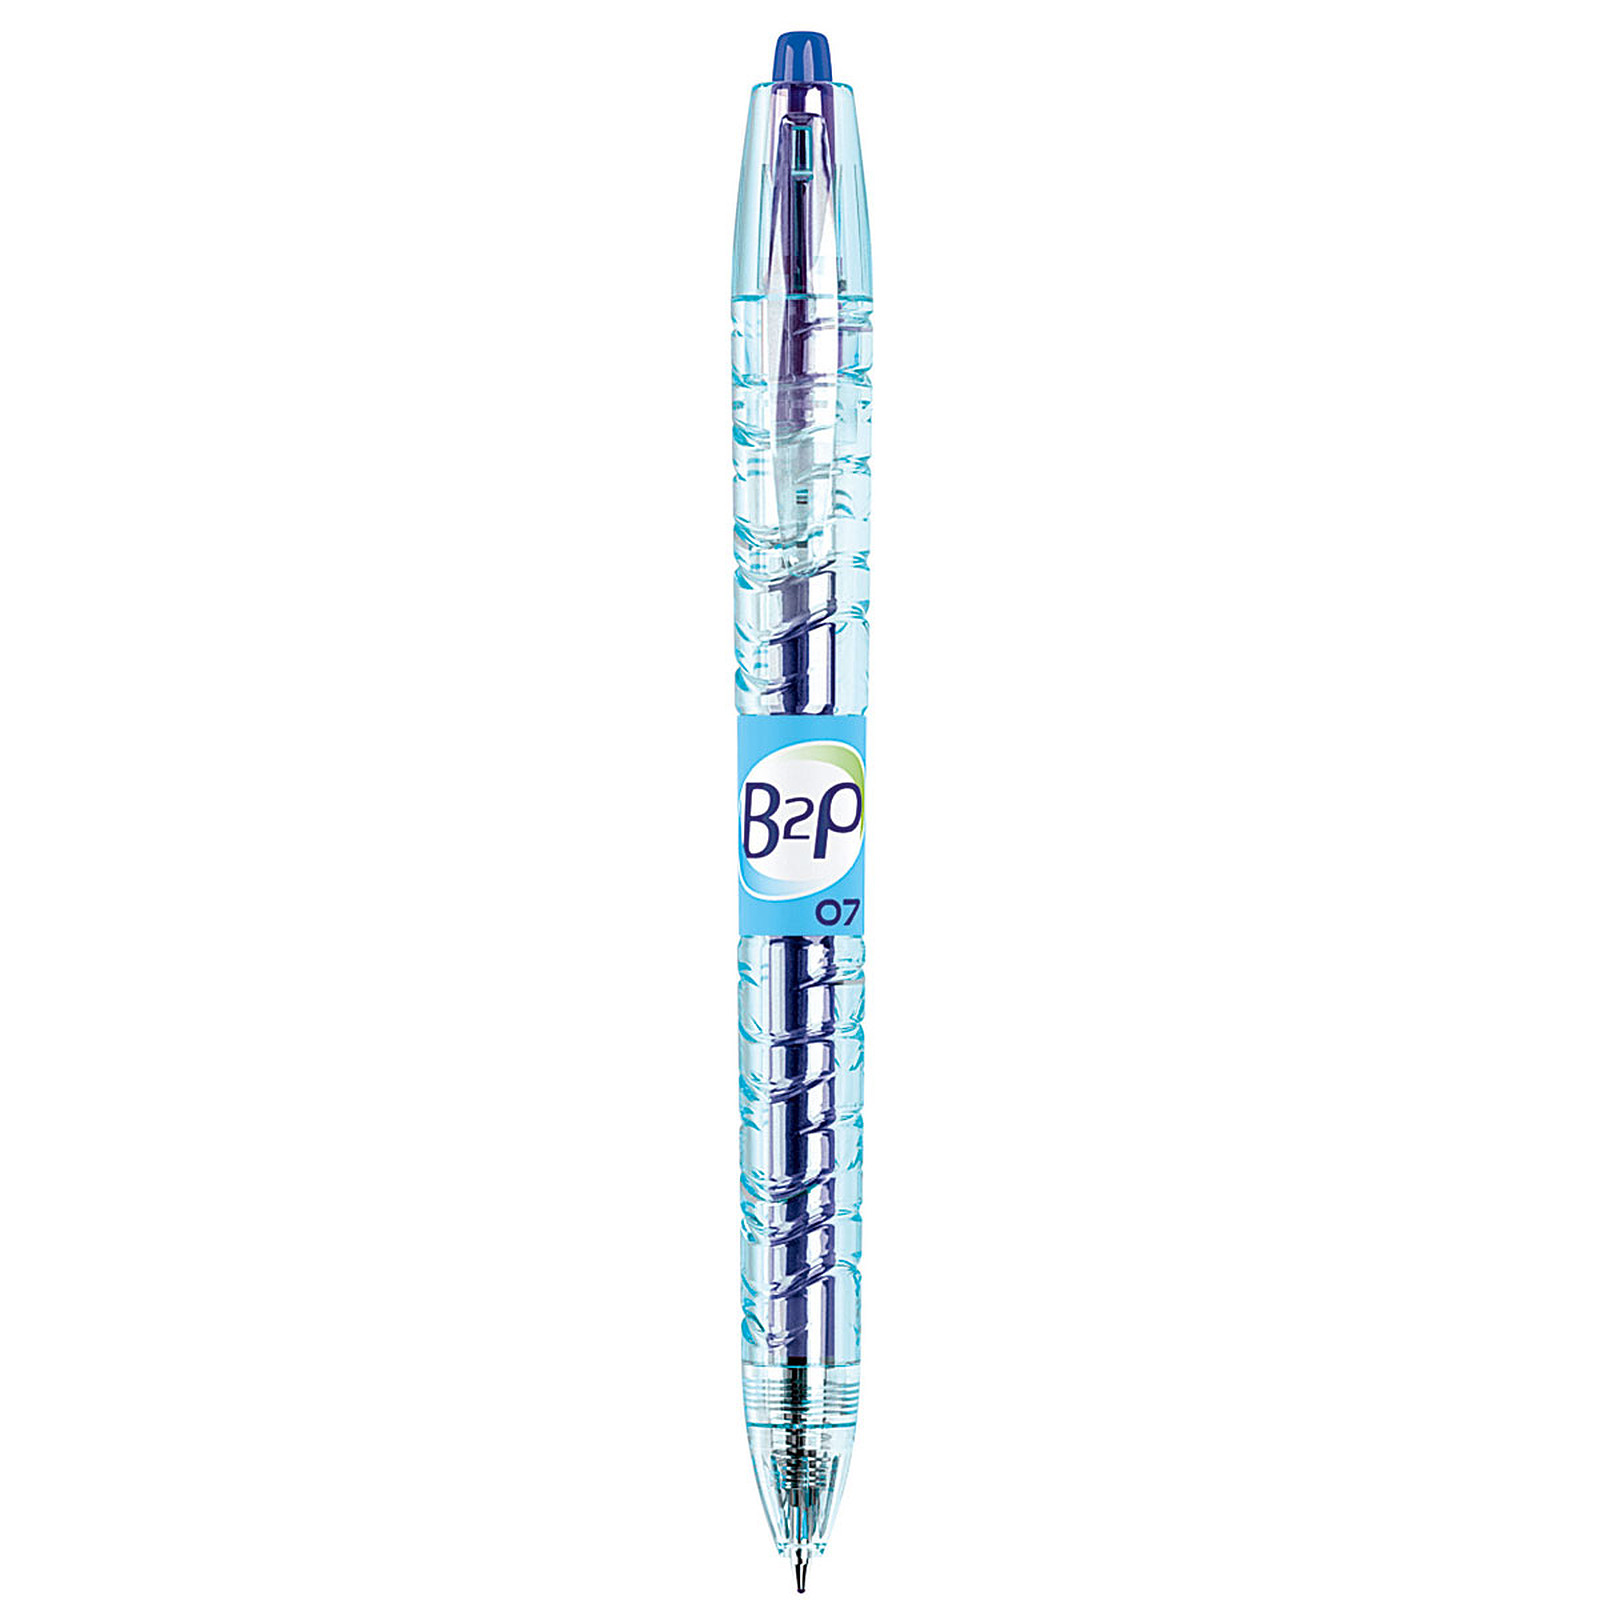 PILOT Begreen B2P bleu pointe 0,7mm